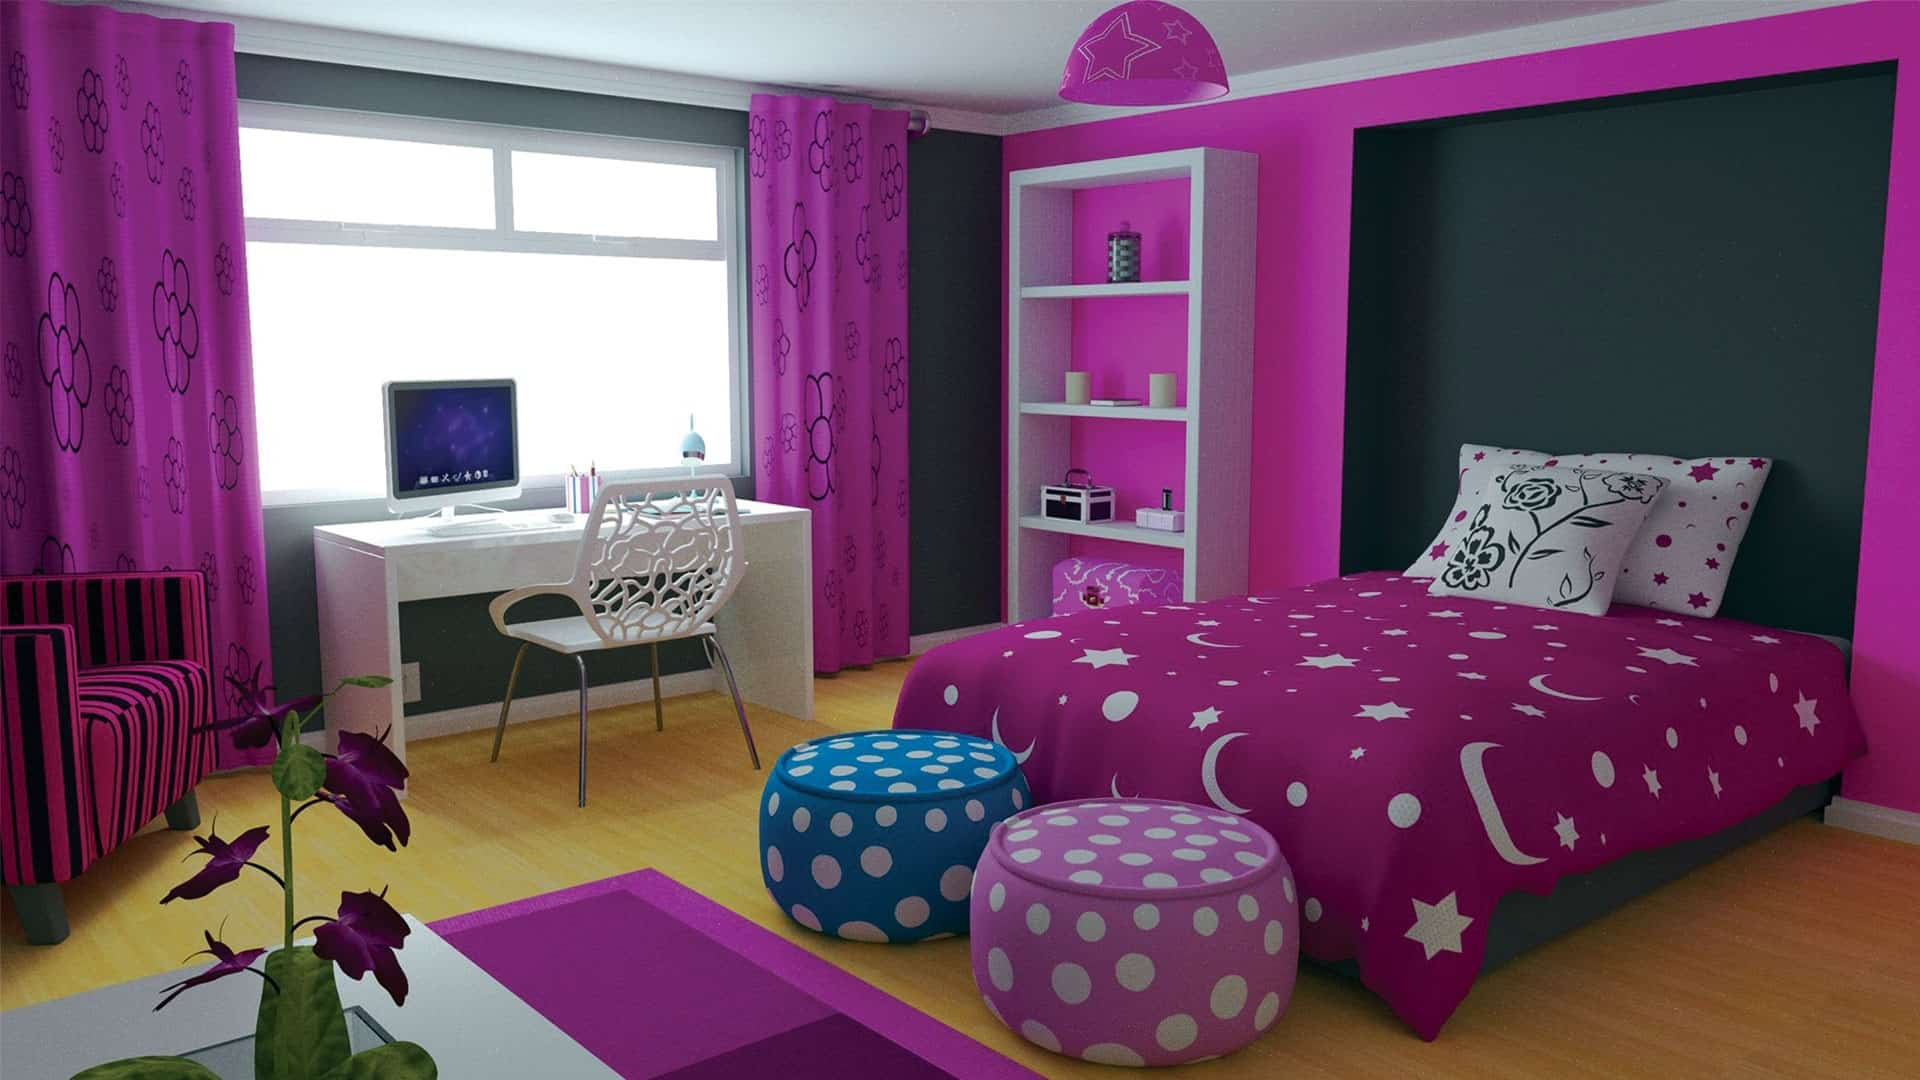 Home Decor Trends 2017 Purple Teen Room House Interior